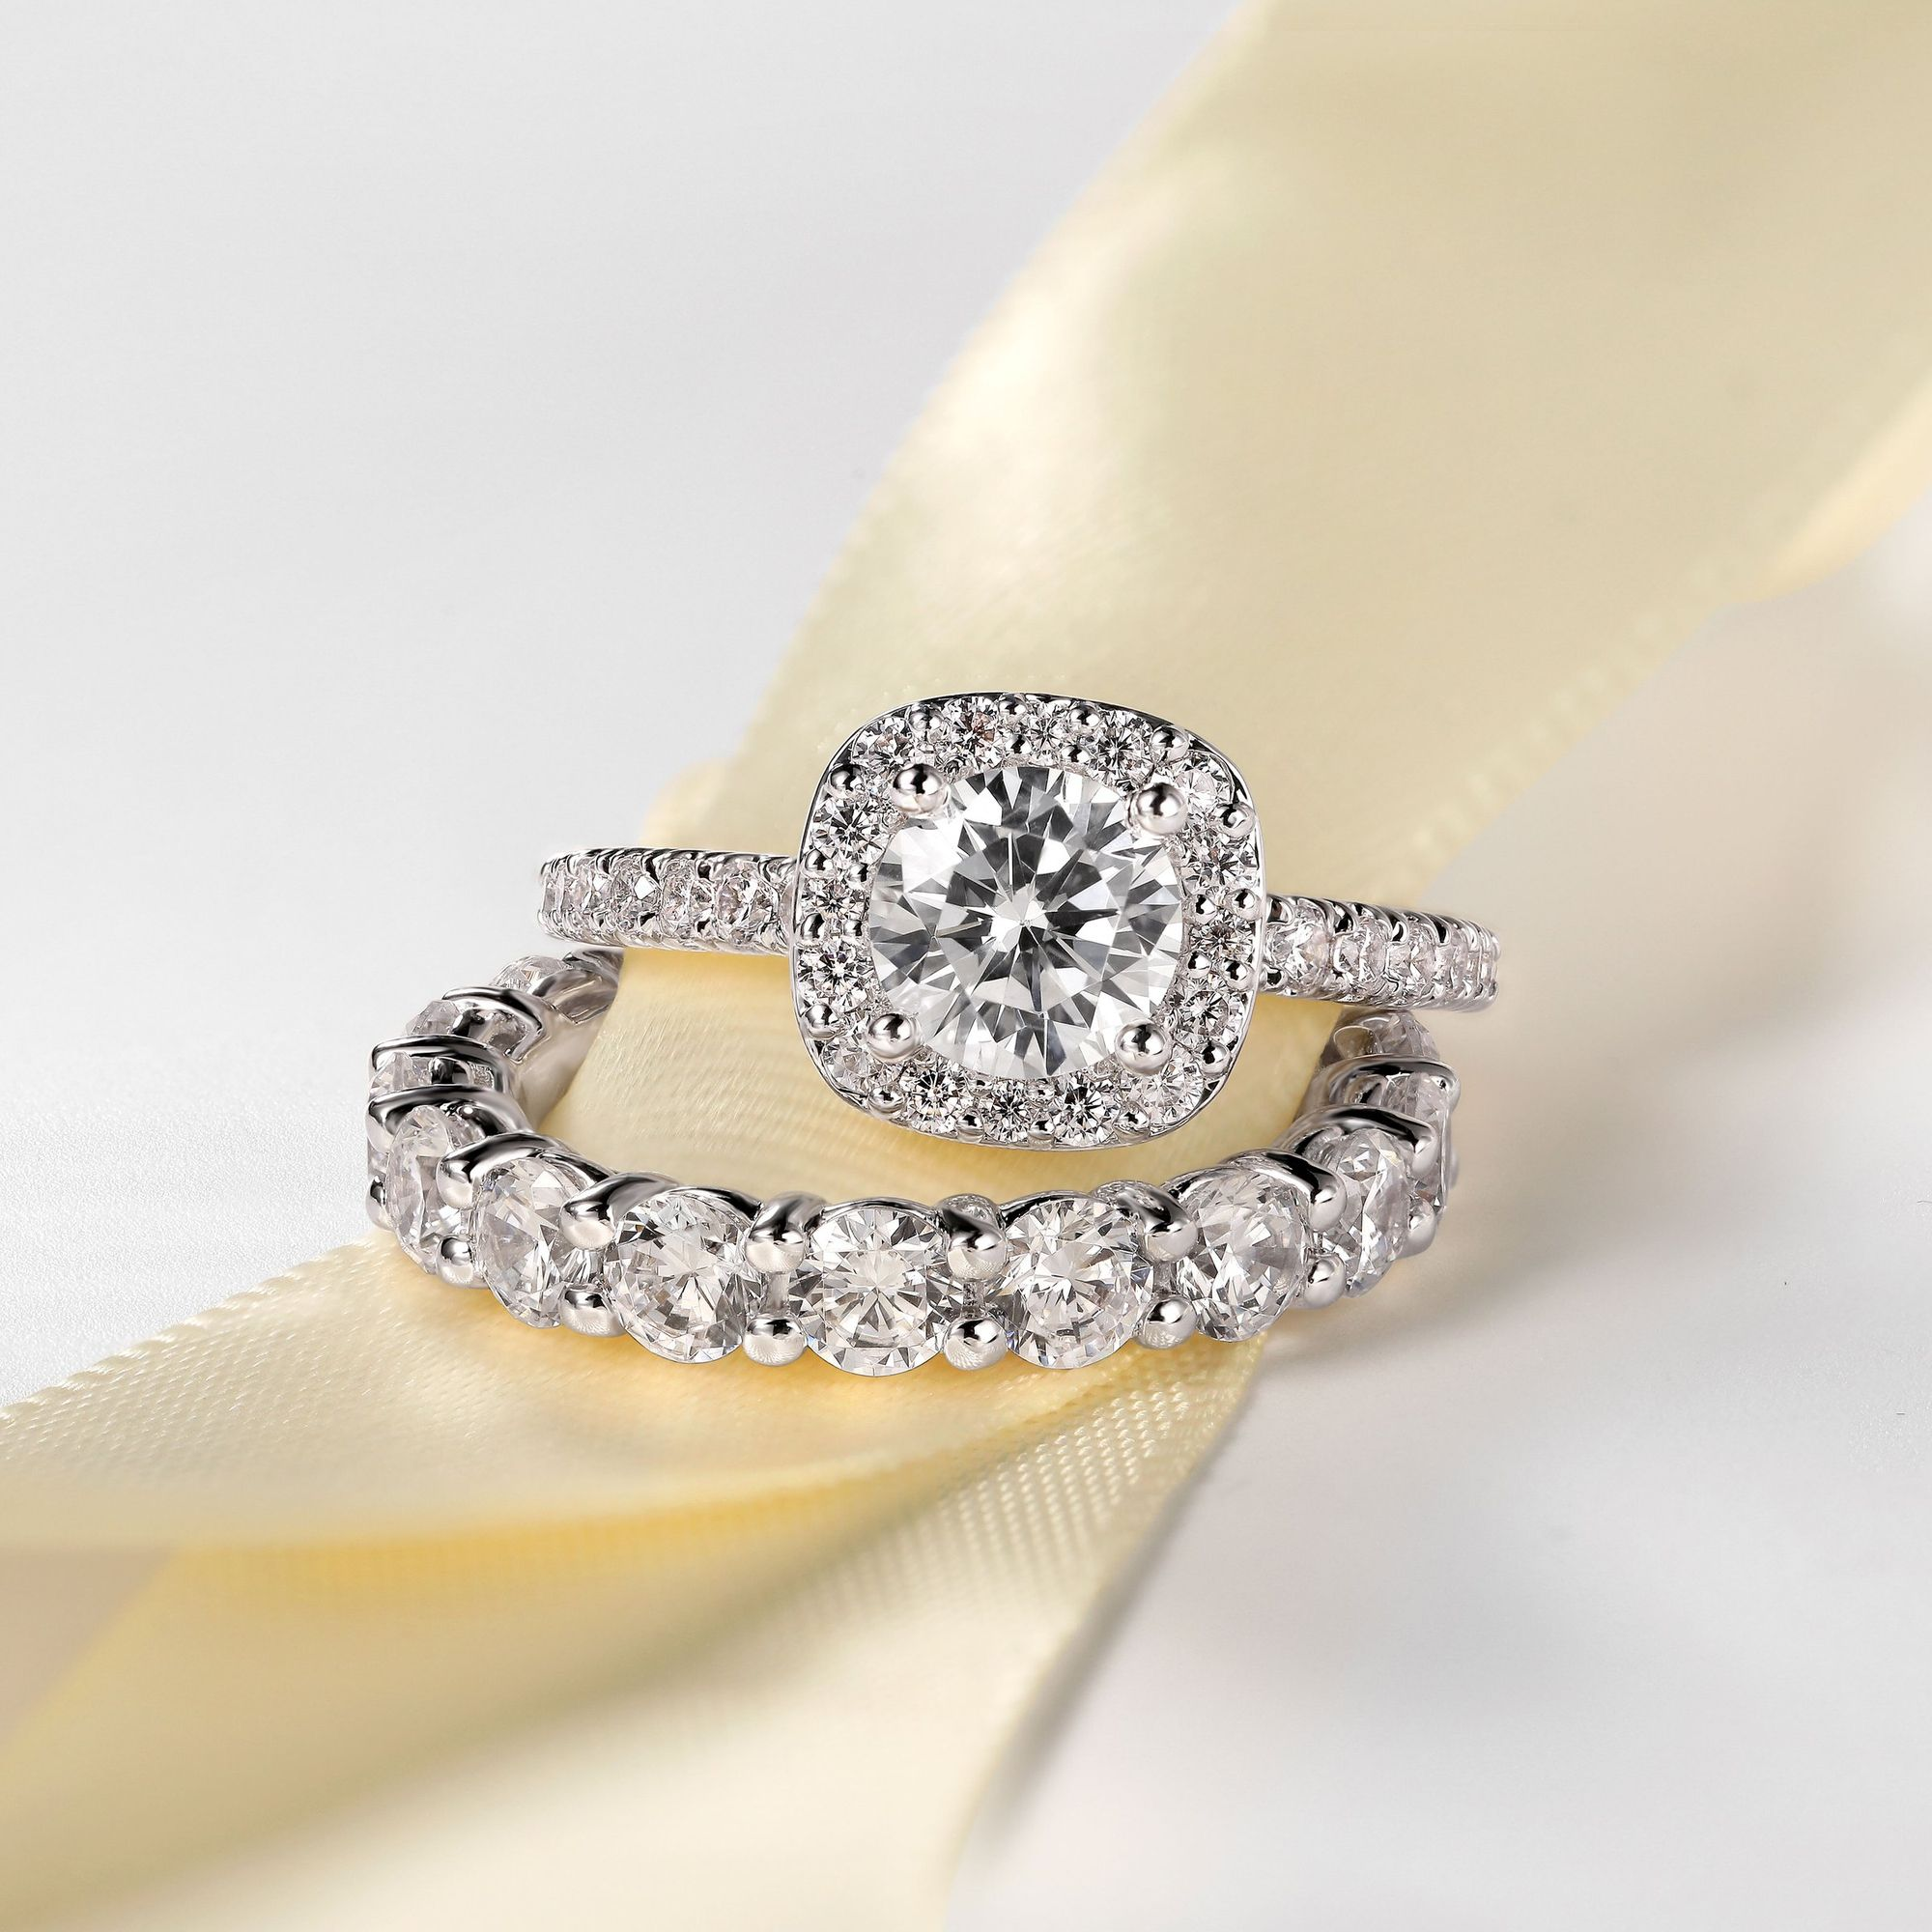 When Two Become One Contemporary Styled Engagement Ring Paired Wi In 2020 Diamond Engagement Rings Round Diamond Engagement Rings Halo Round Diamond Engagement Rings